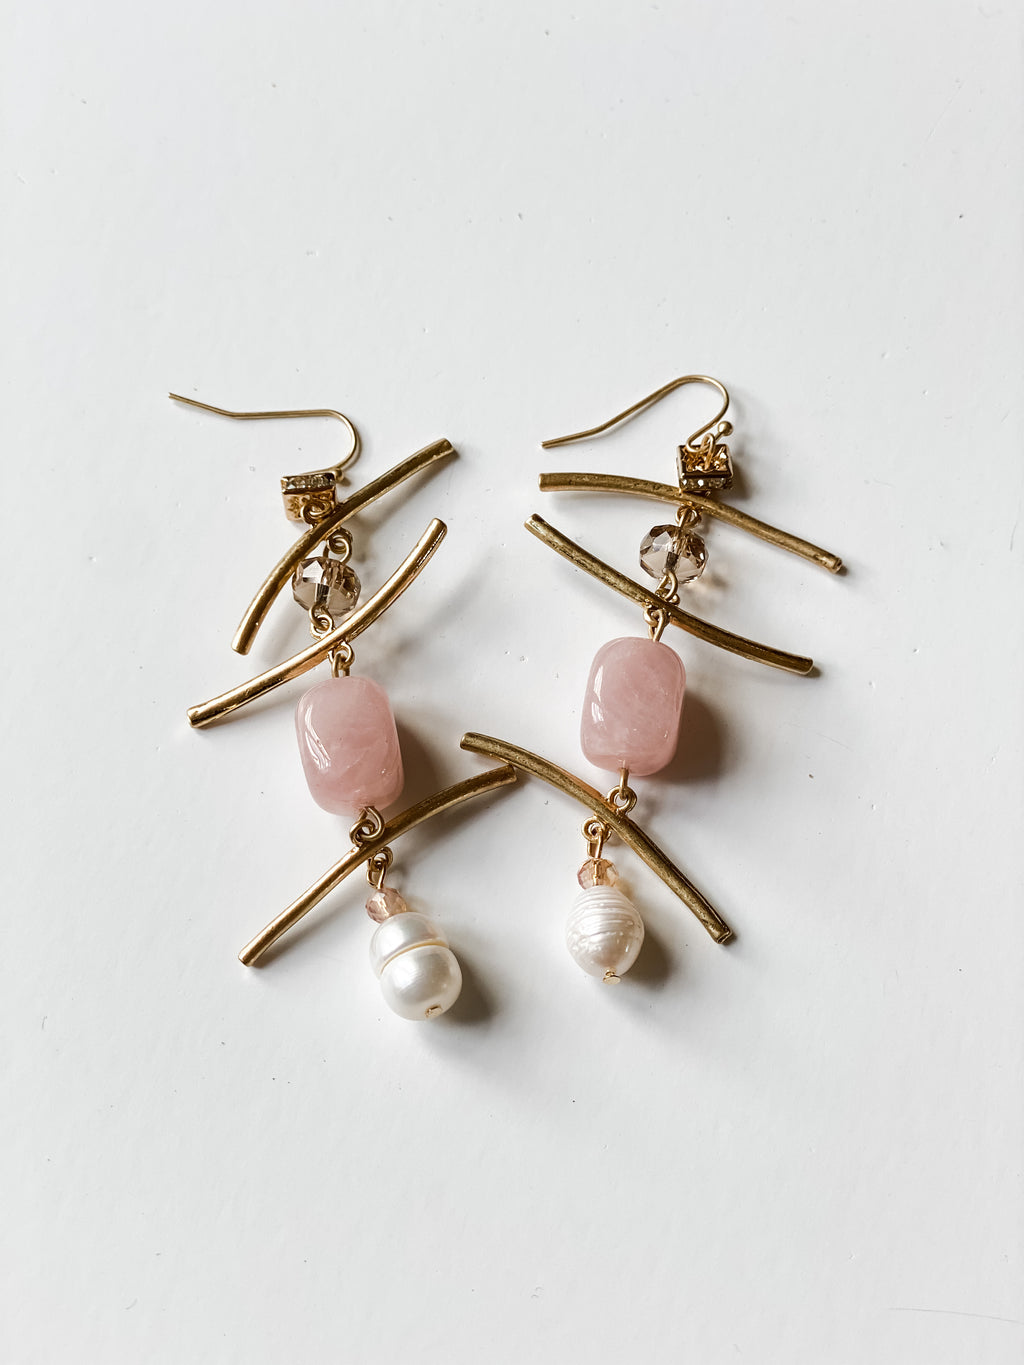 Sticks & Stones Pink Earrings - Vintage Hope Boutique